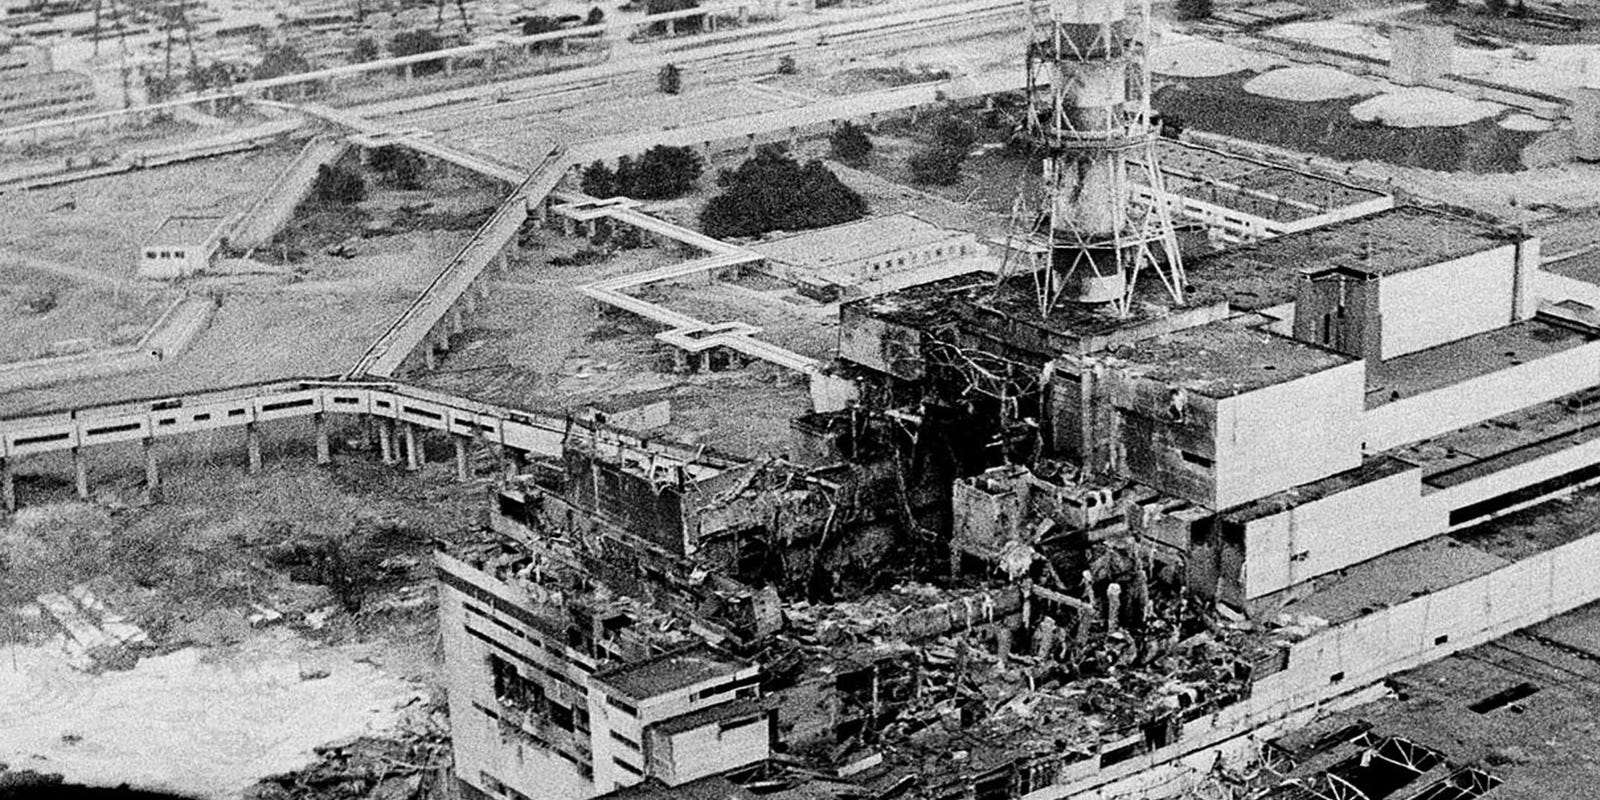 Chernobyl was catastrophic, but nuclear power now is safe and vital